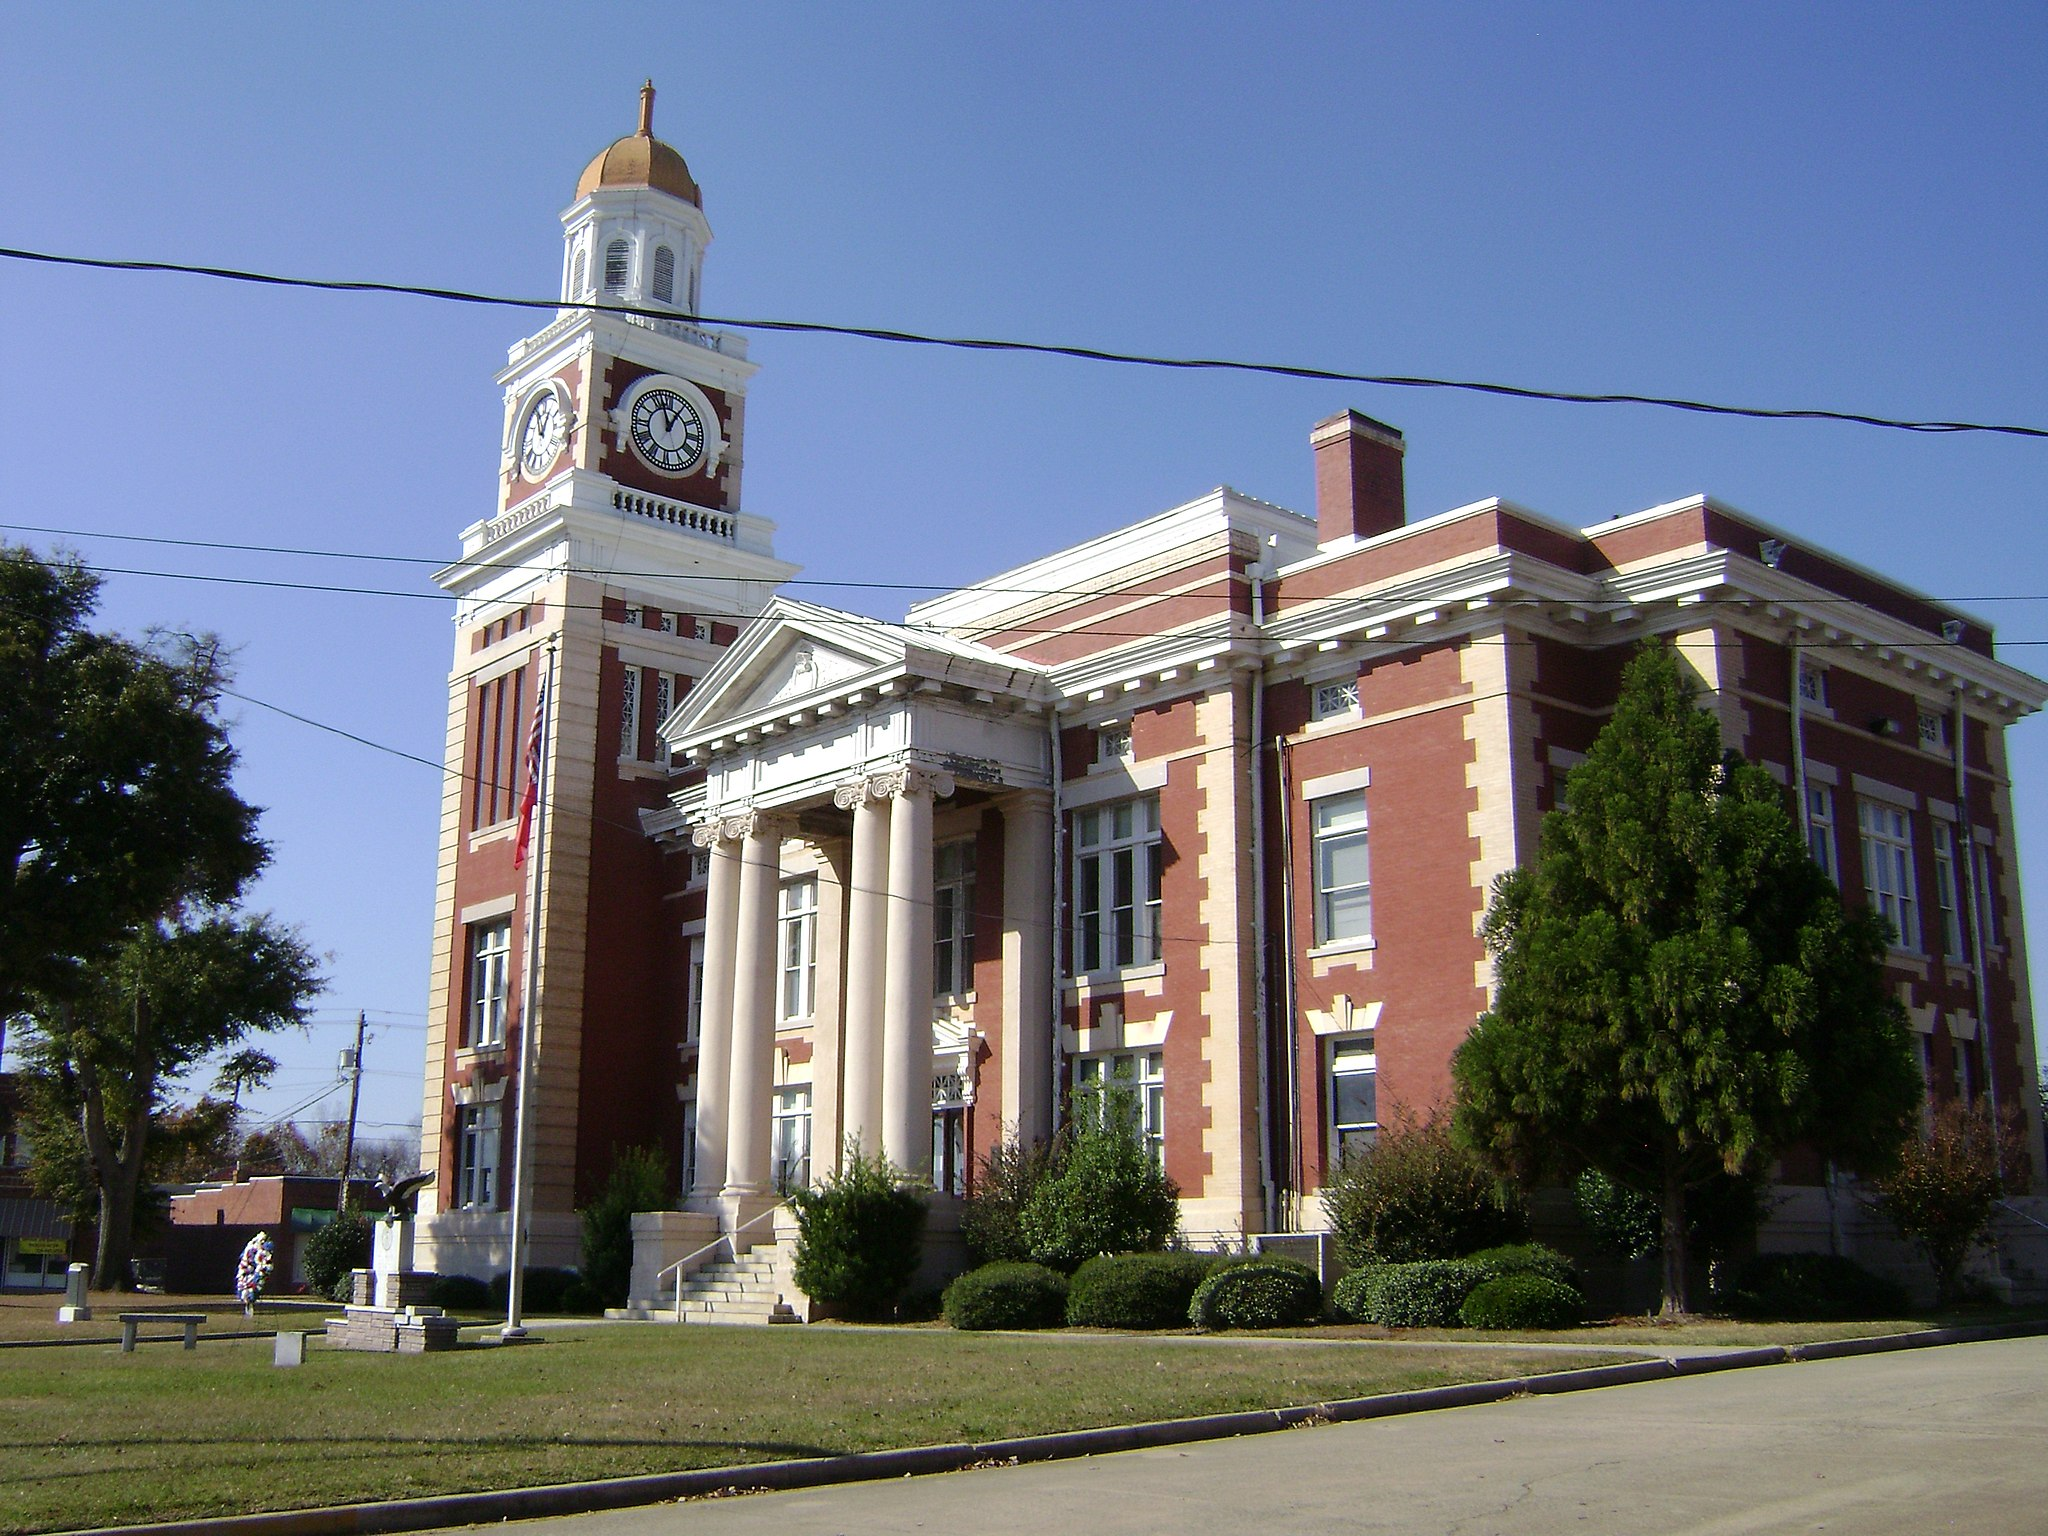 Turner County Courthouse from SE corner